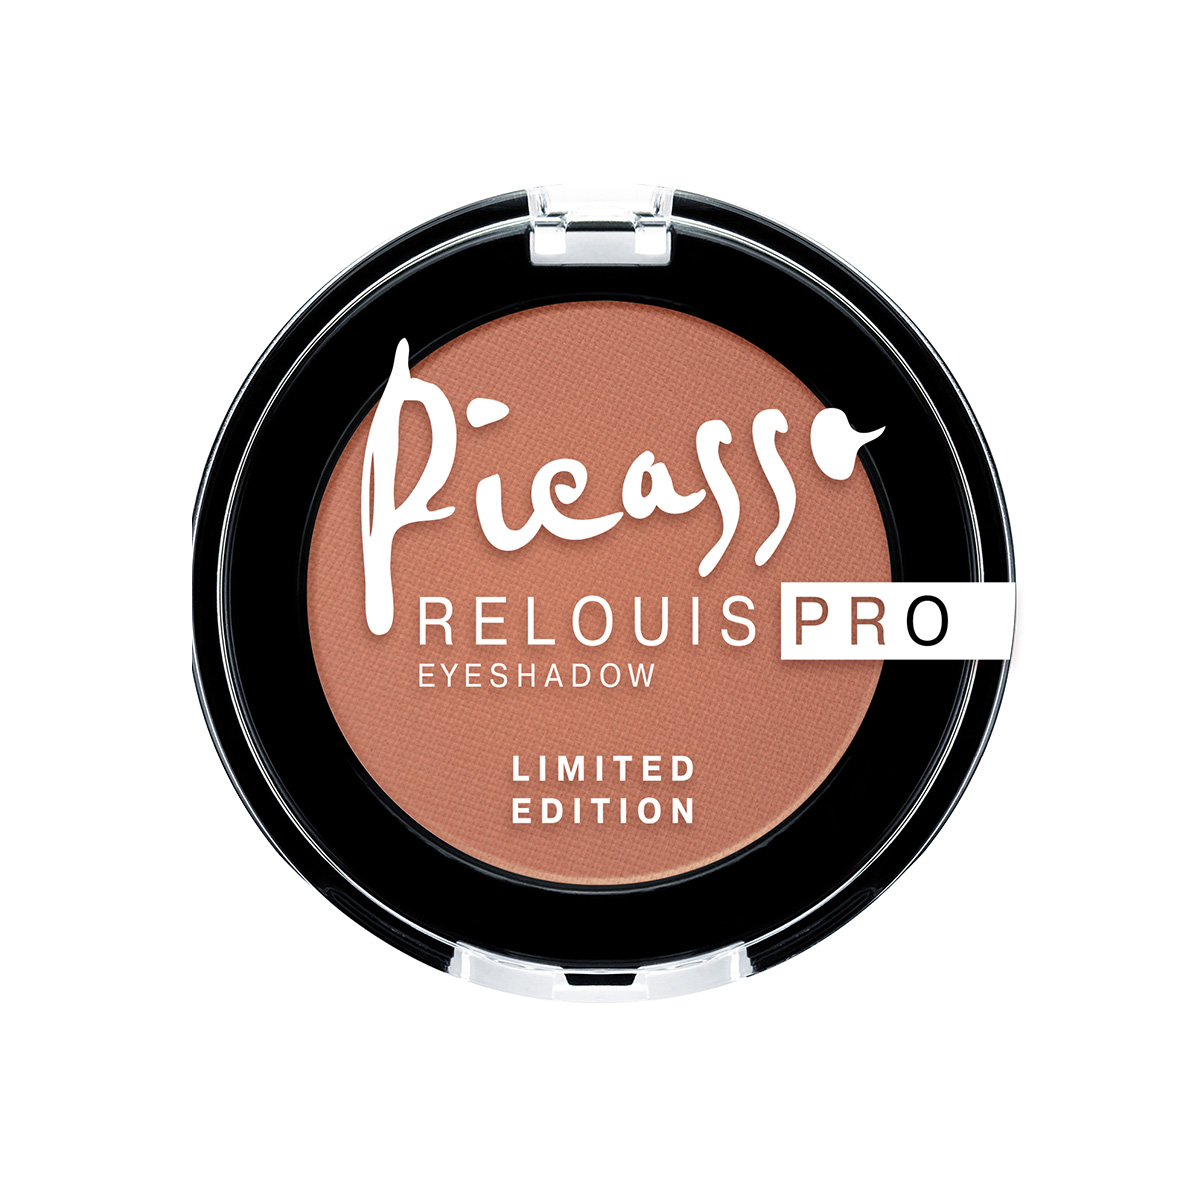 Relouis Pro Picasso Limited Edition 03 BAKED CLAY